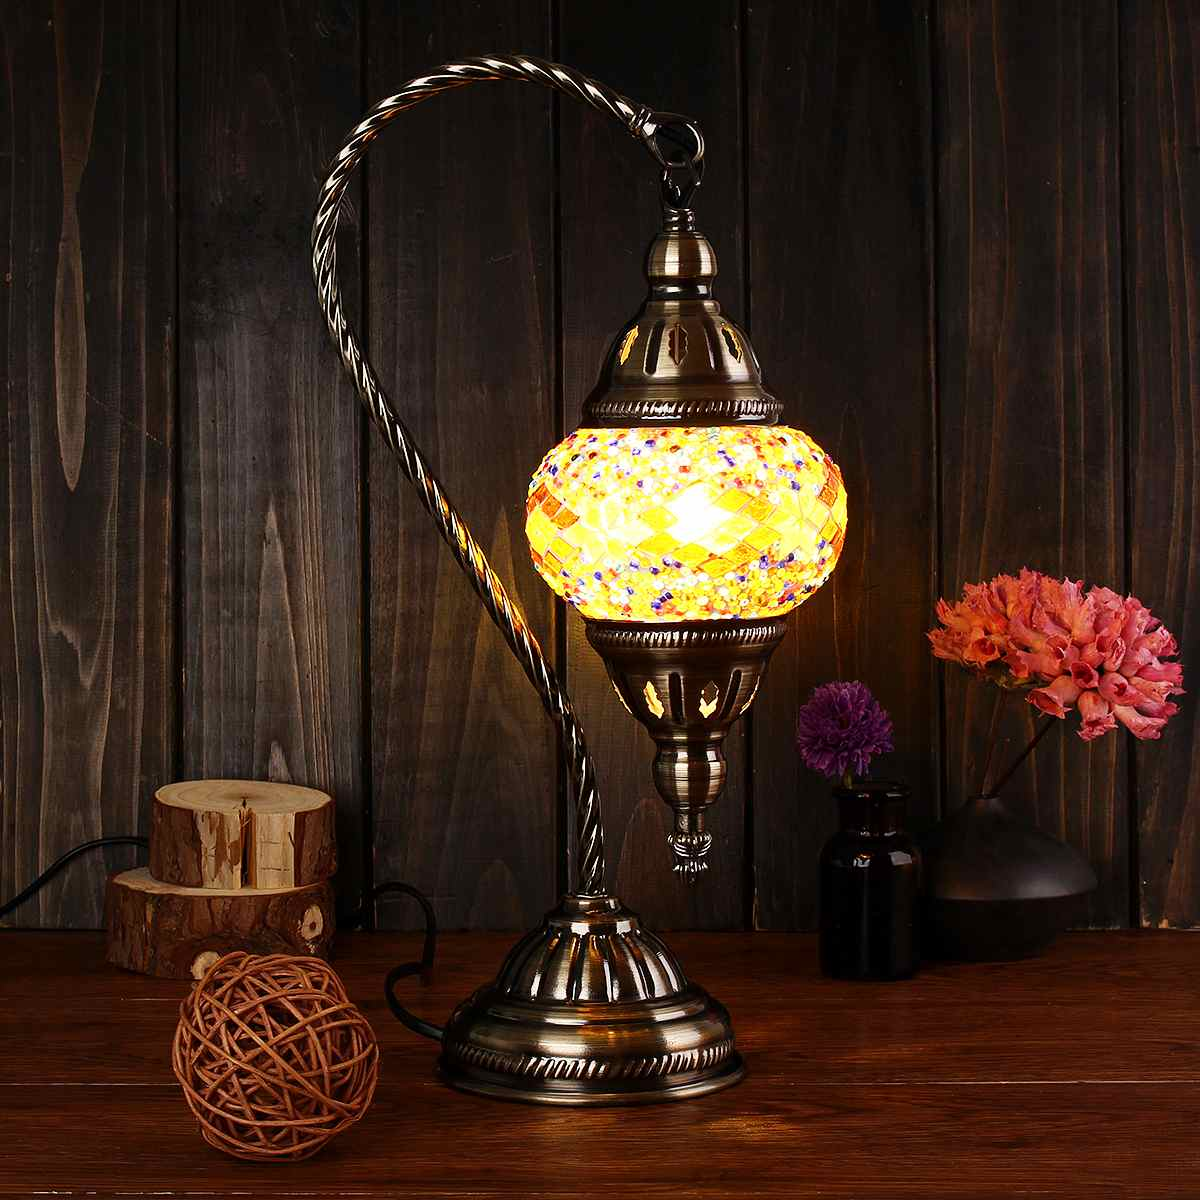 US $47.52 28% OFF|Hand inlaid Glass Table Lamps Turkish Light Decorative  for Bedroom Living Room Desk Light Morocco Style Gift E14 Vintage-in Table  ...